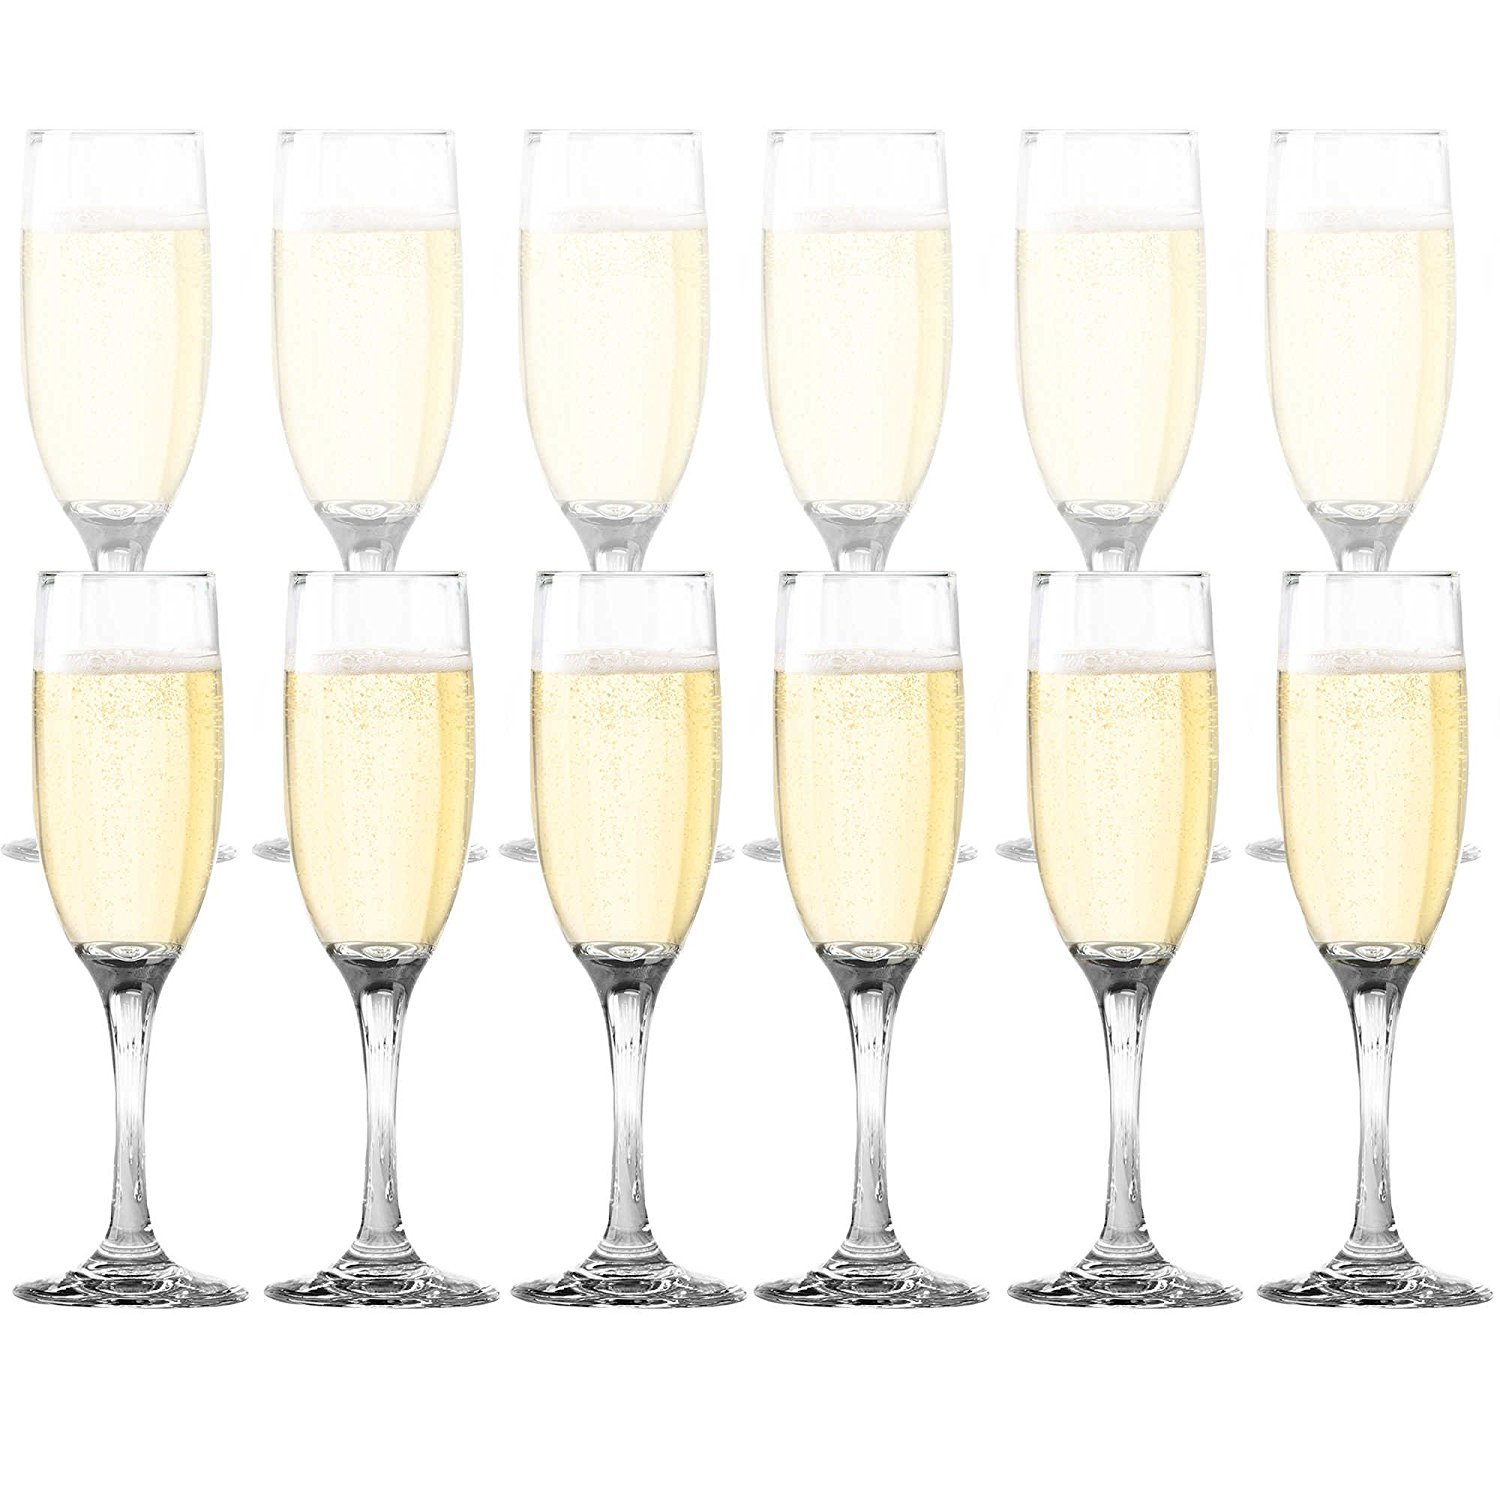 Dailyware Toasting Flutes (Set of 12), Elegant Style Glasses, Perfect for Special Occassions (3)